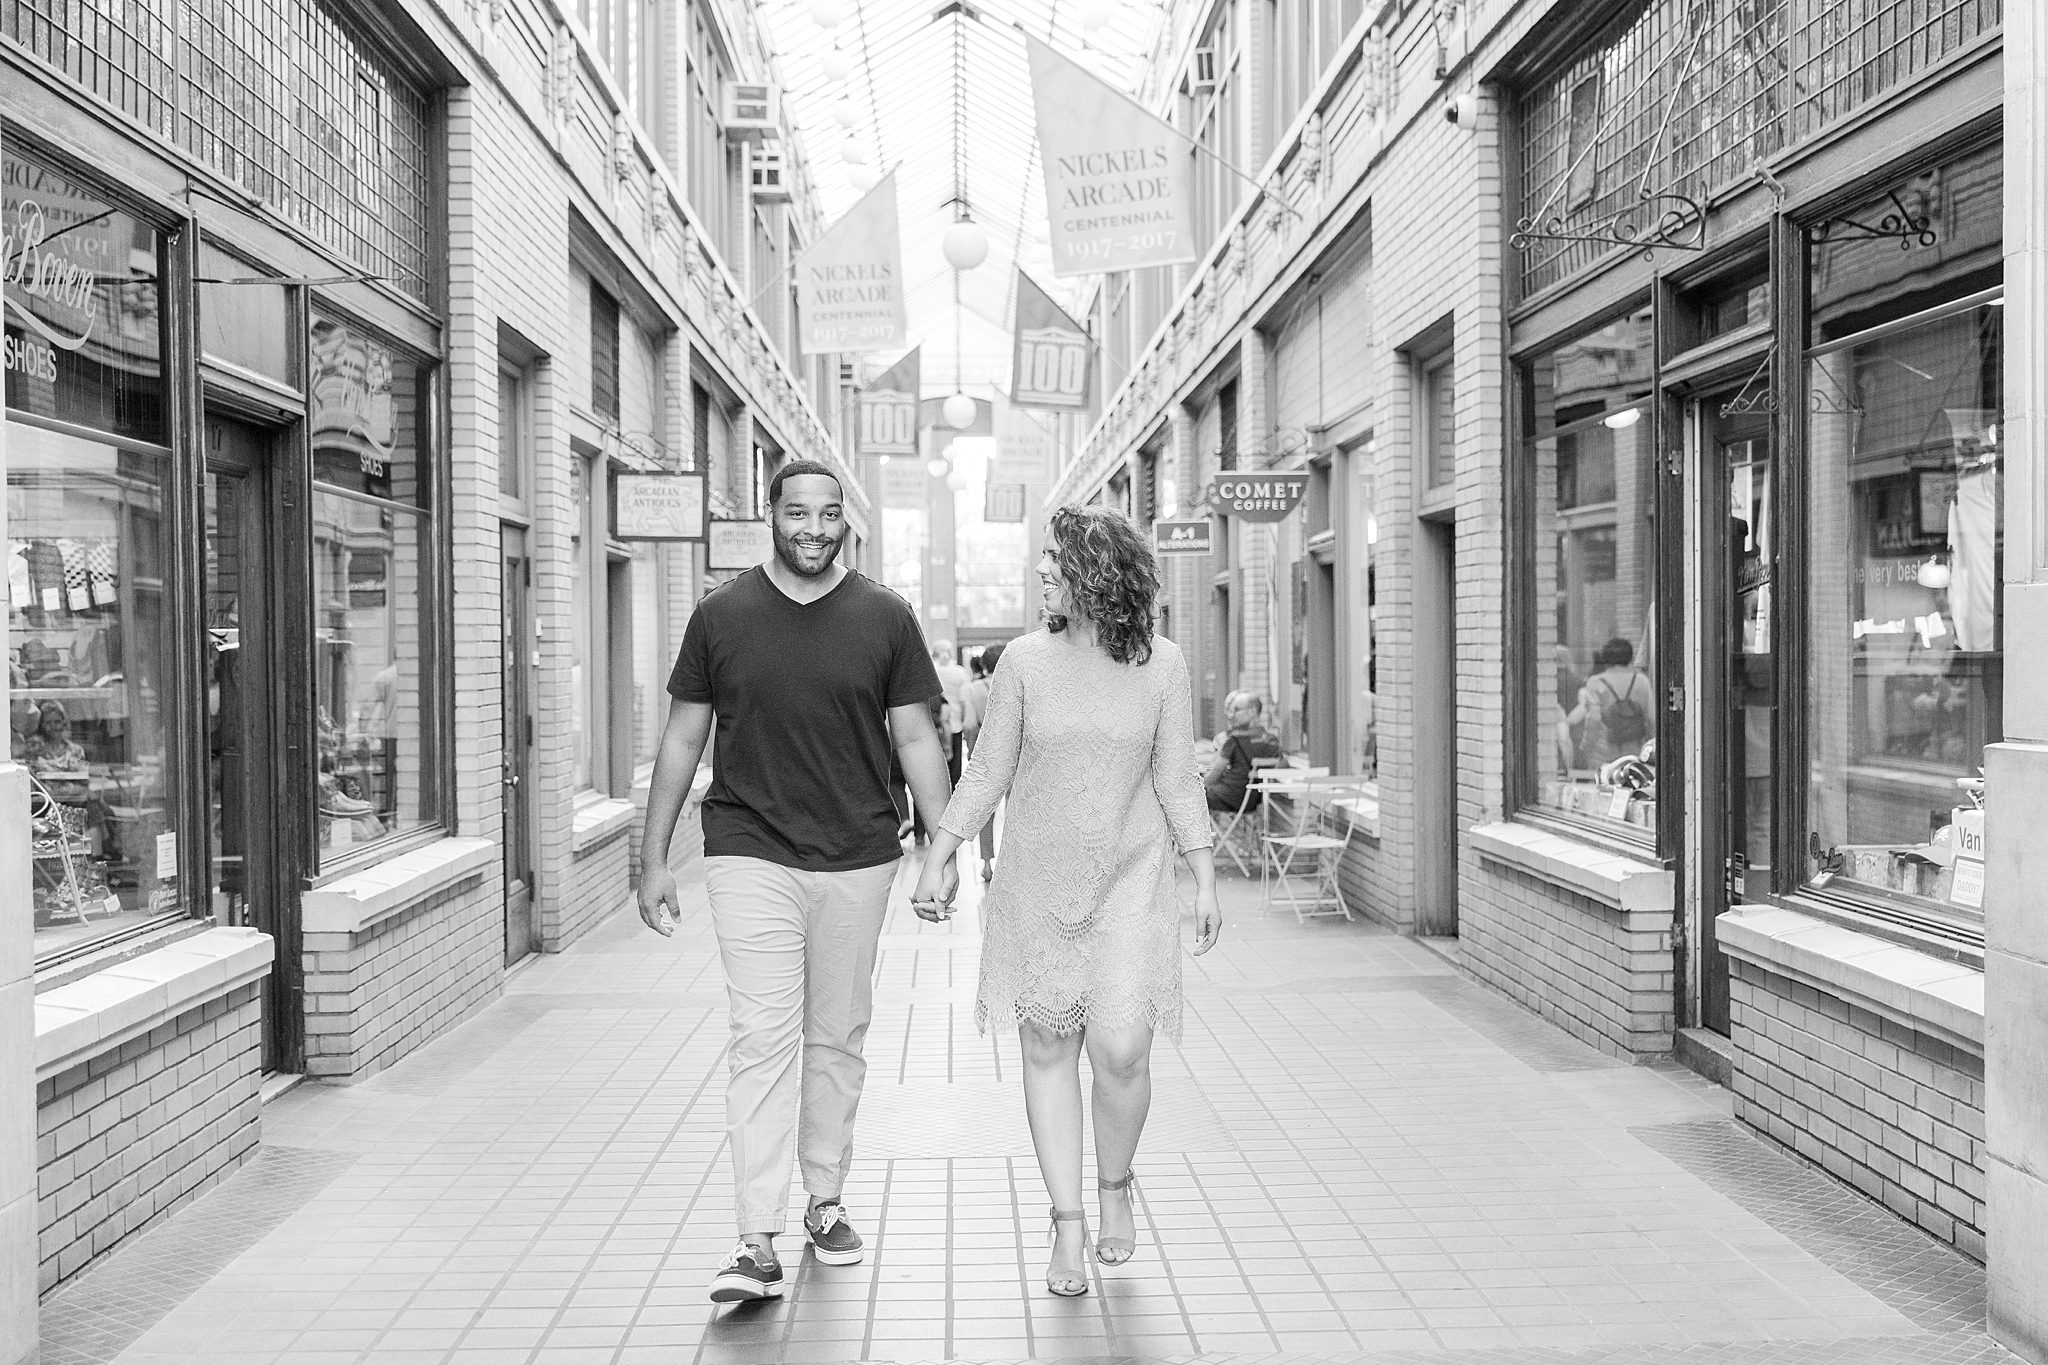 joyful-college-campus-engagement-photography-at-university-of-michigan-in-ann-arbor-mi-by-courtney-carolyn-photography_0016.jpg